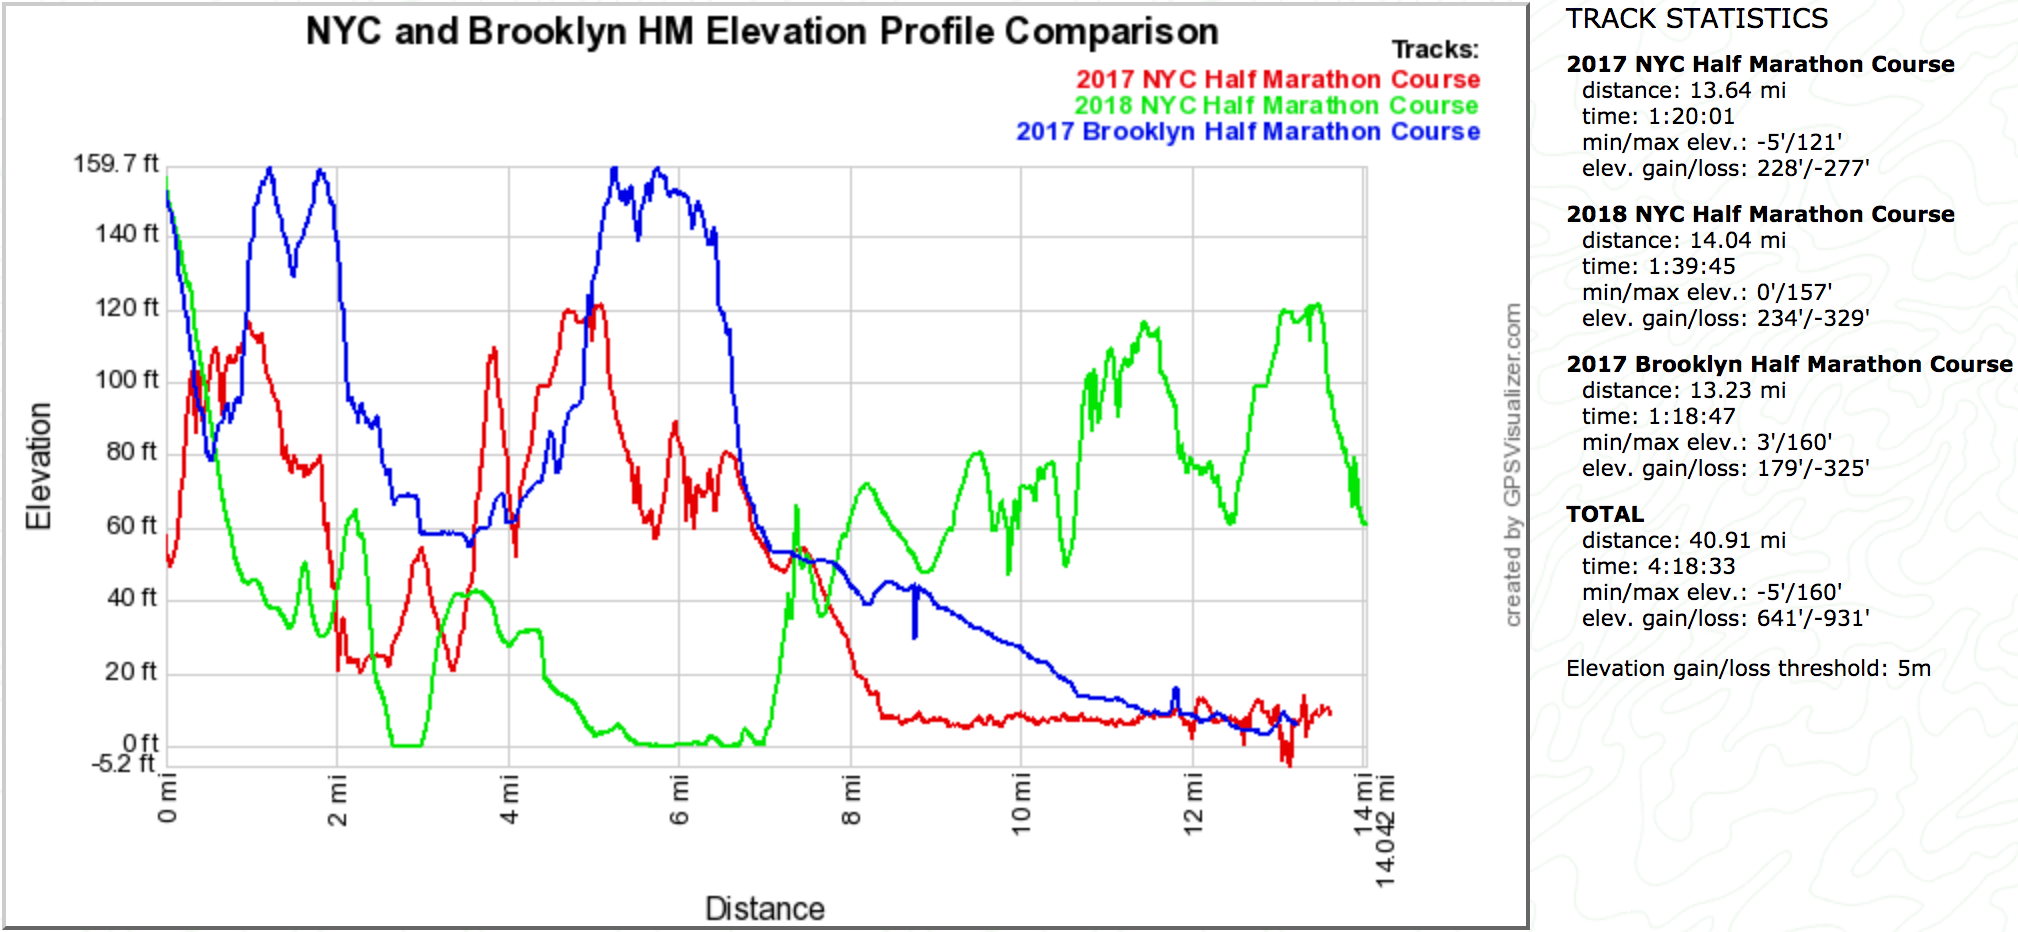 Brooklyn and 2017&2018 NYC HM Elevation Comparison